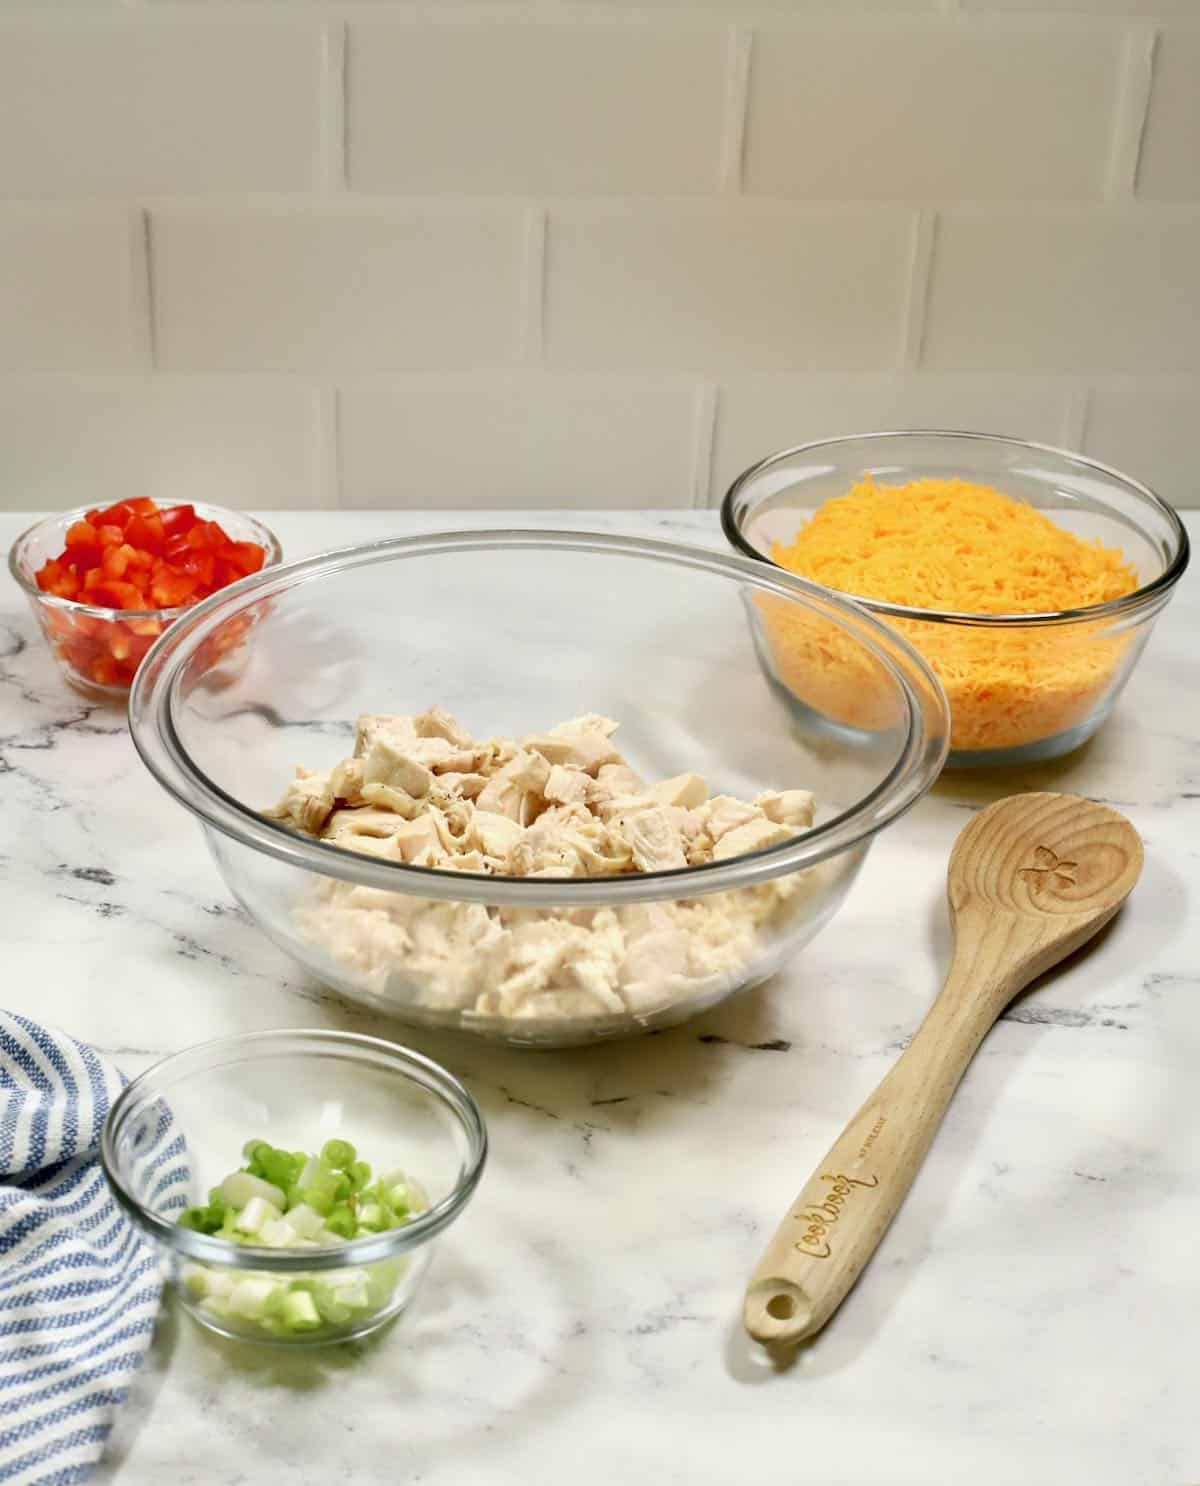 Chicken, cheese, and bell peppers in glass bowls.